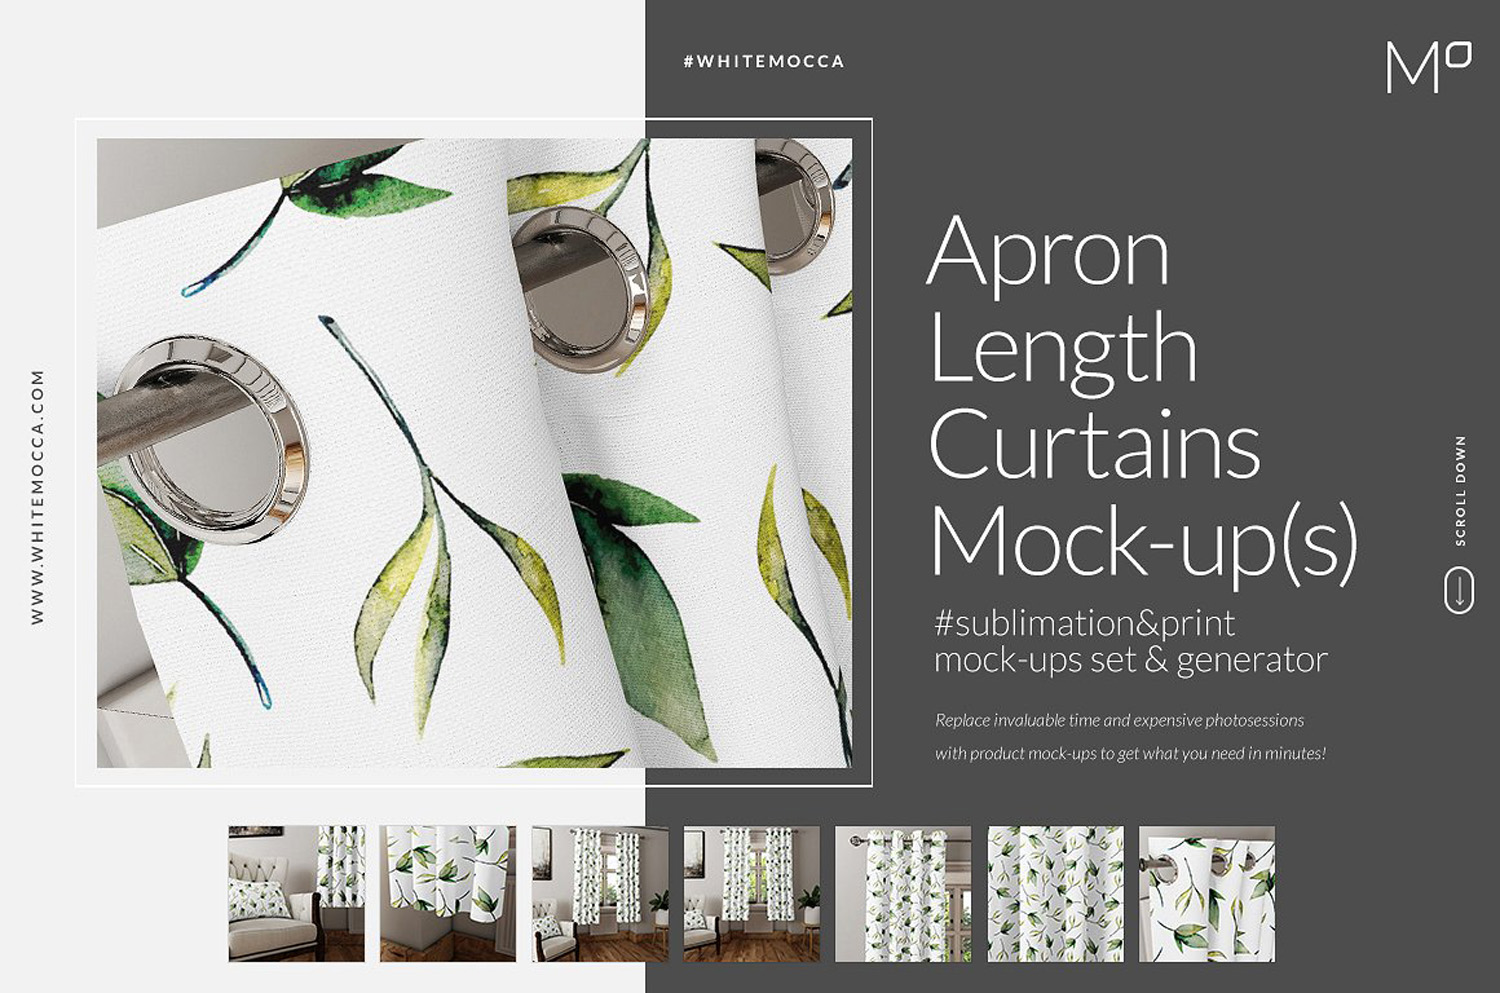 Apron Length Curtains Mockups